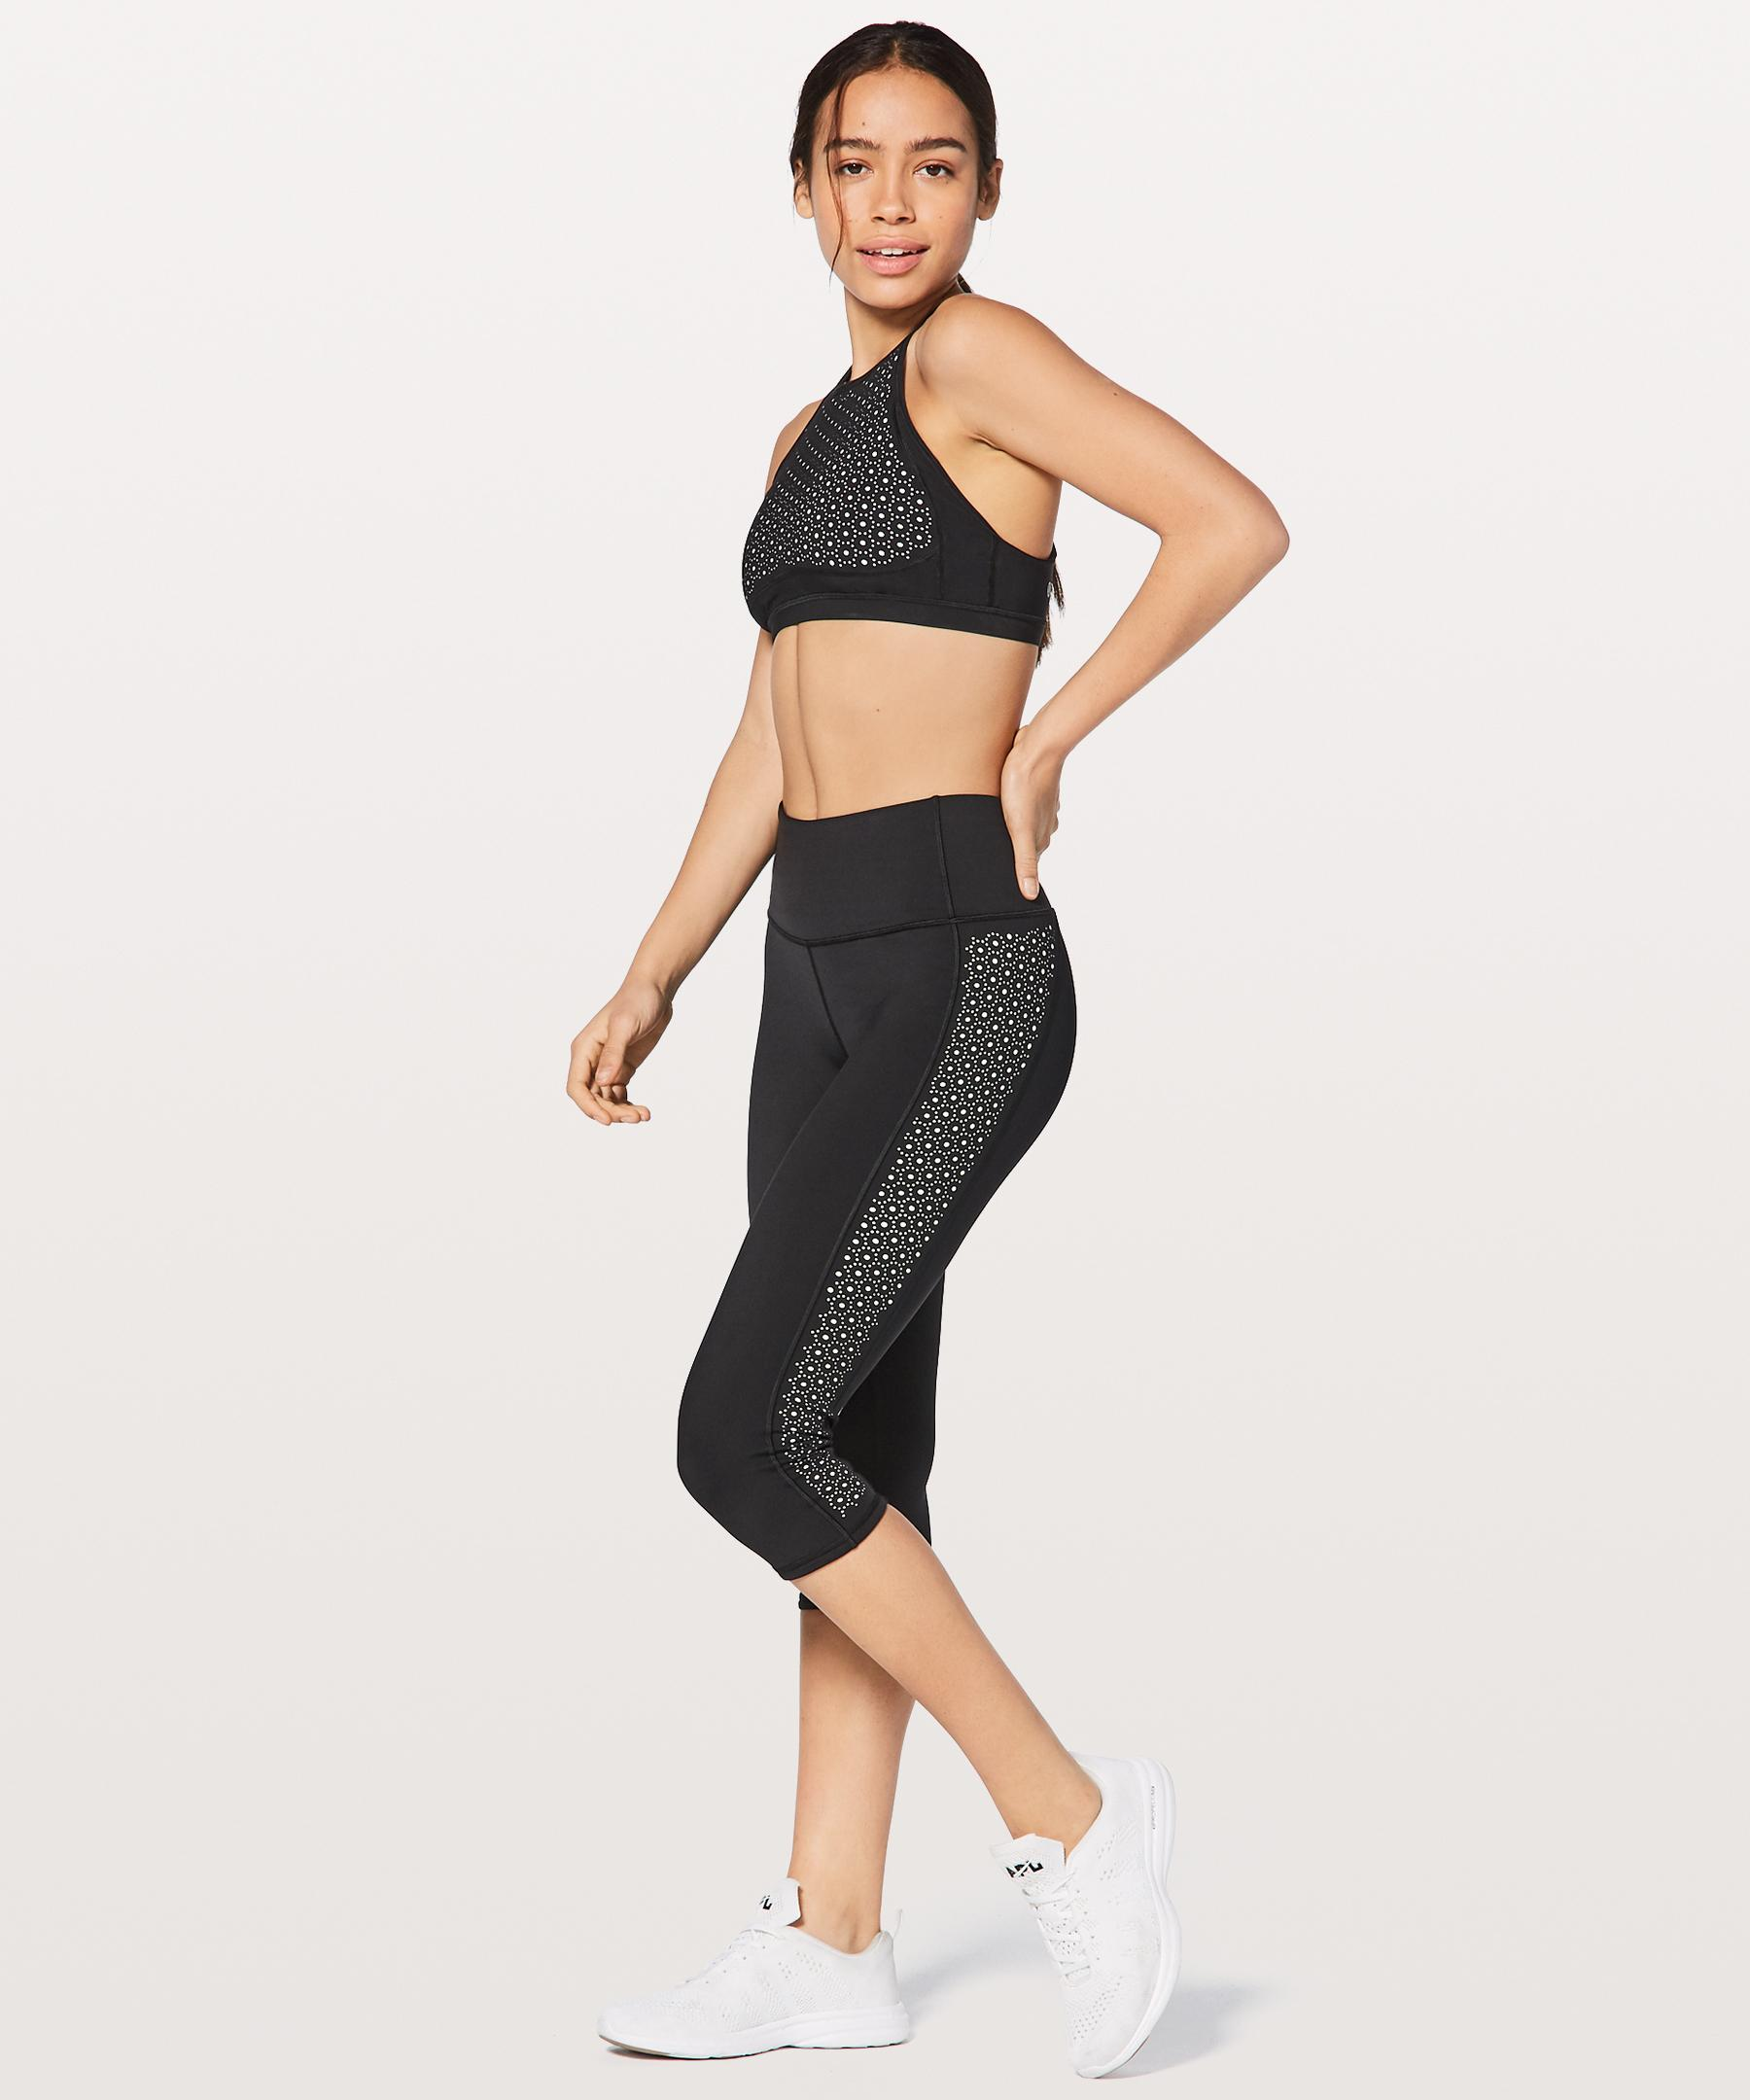 b6751fbe02625 lululemon athletica Colour Me Quick Crop in Black - Lyst